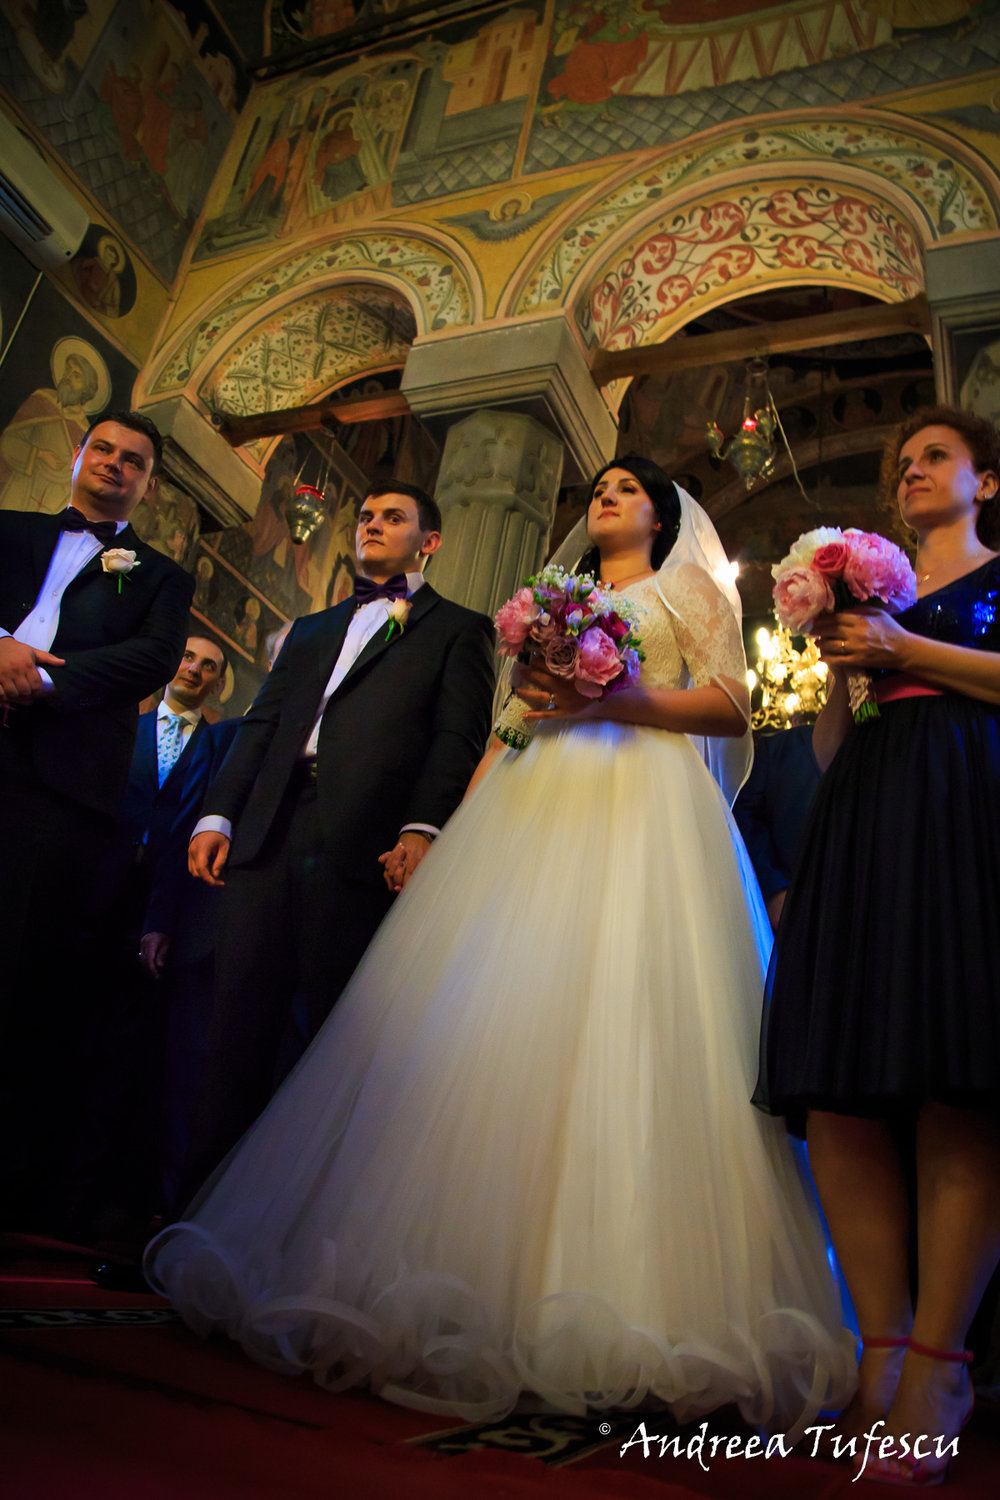 Wedding and Engagement Photography by Andreea Tufescu - S & C Wedding - Traditional Church Ceremony and Reception